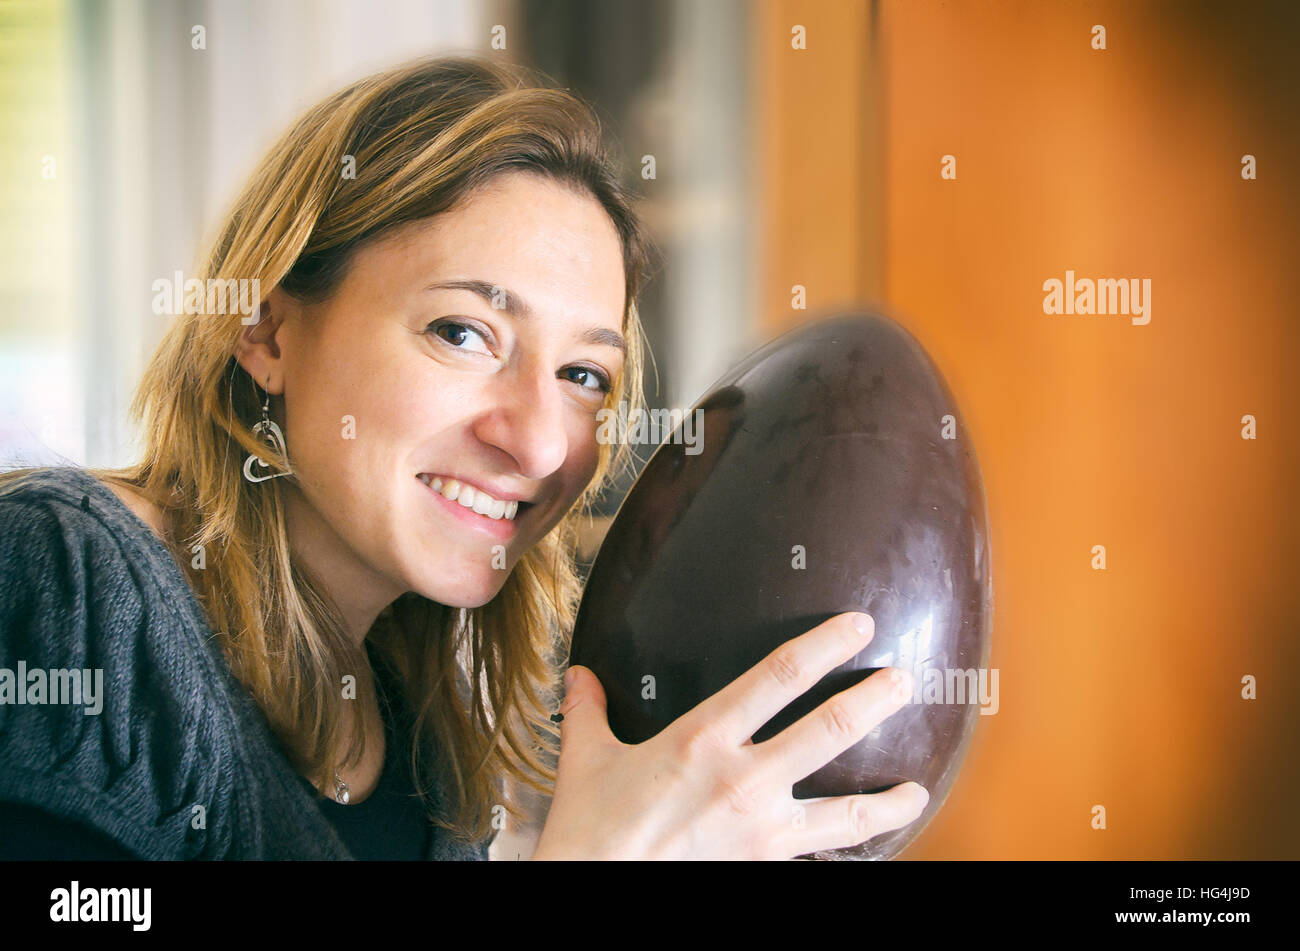 unwrapped easter egg woman happy smile portrait - Stock Image